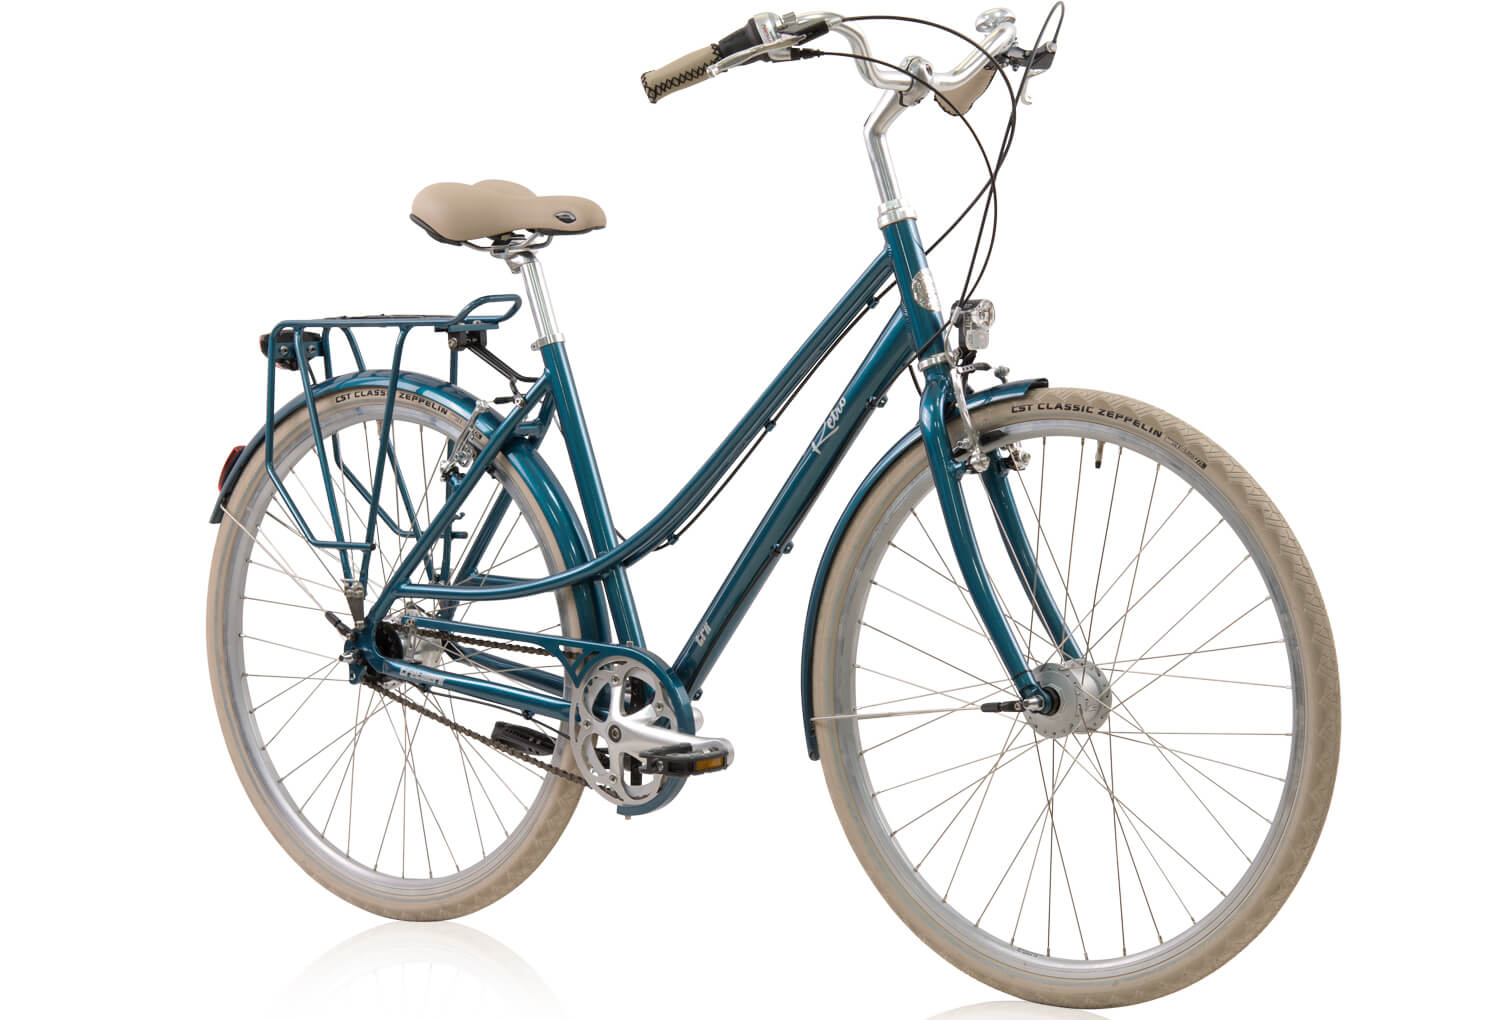 tretwerk retro citybike premium damen blau citybikes. Black Bedroom Furniture Sets. Home Design Ideas